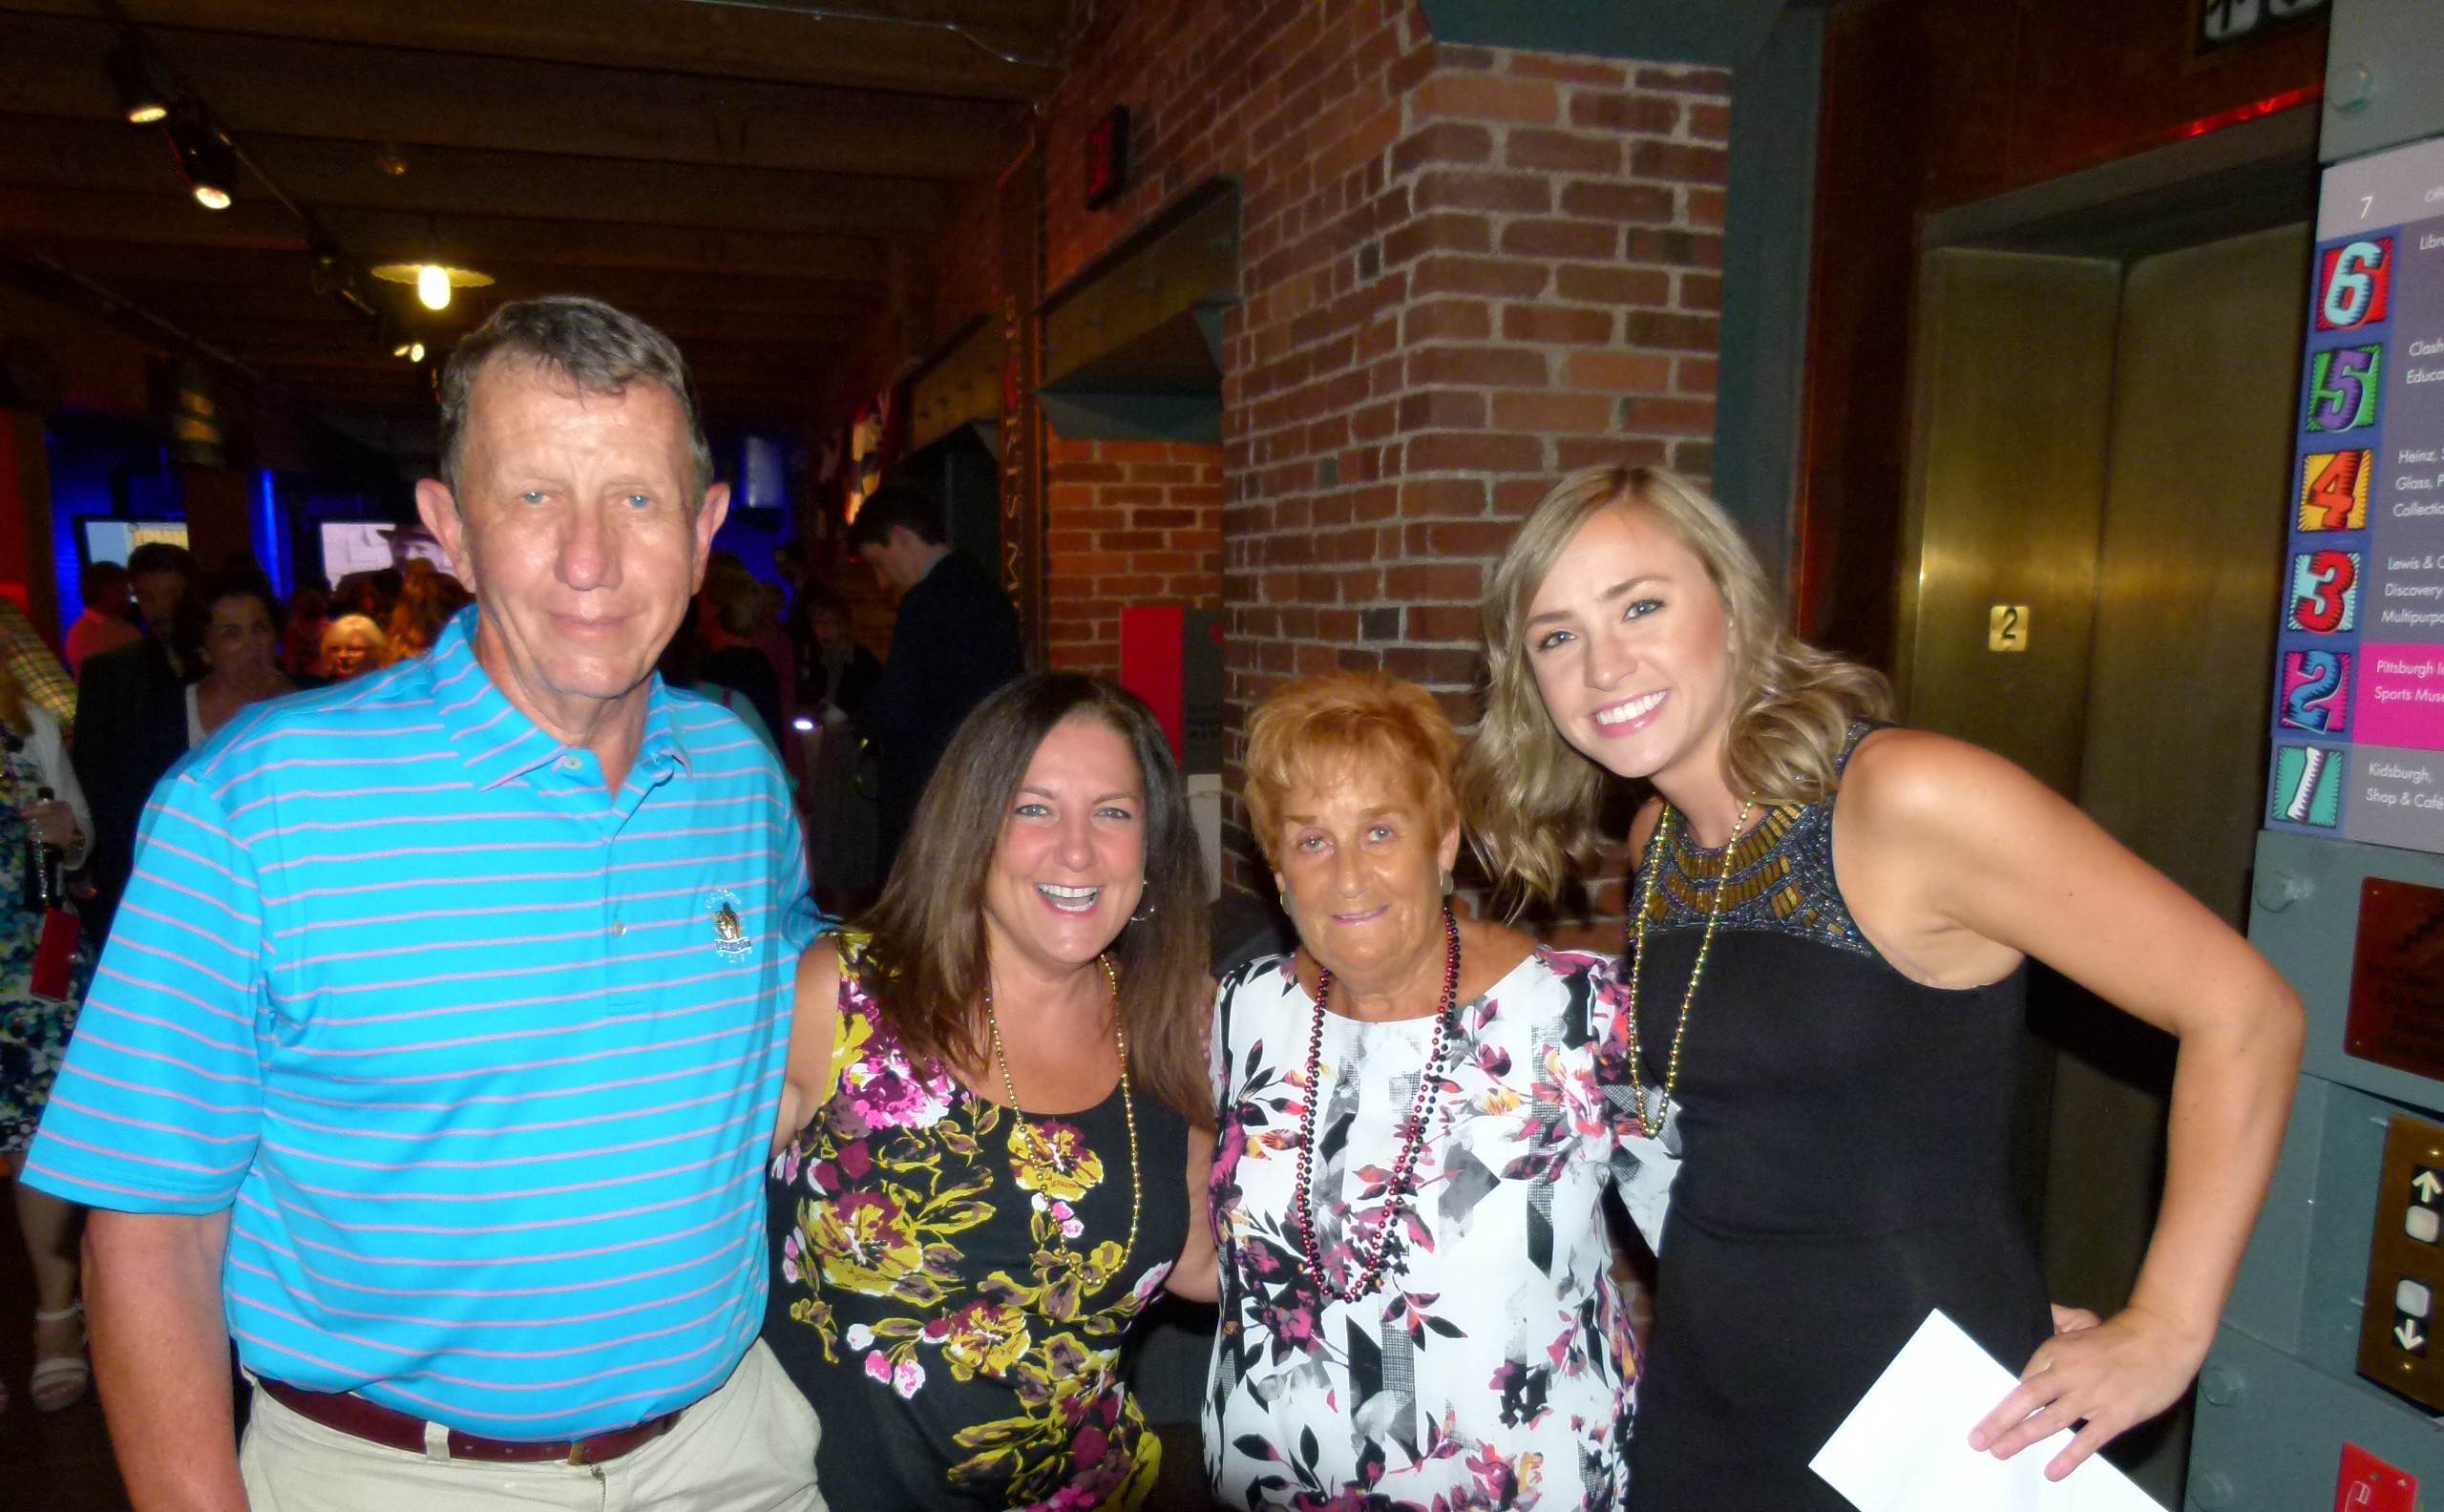 Judy O'Connor (center right), wife of the late Pittsburgh Mayor Bob O'Connor, flanked on the left by daughter Heidy O'Connor Garth, and Bob Jablonowski; and on the right by daughter in law Katie O'Connor (Councilman Corey O'Connor's wife).